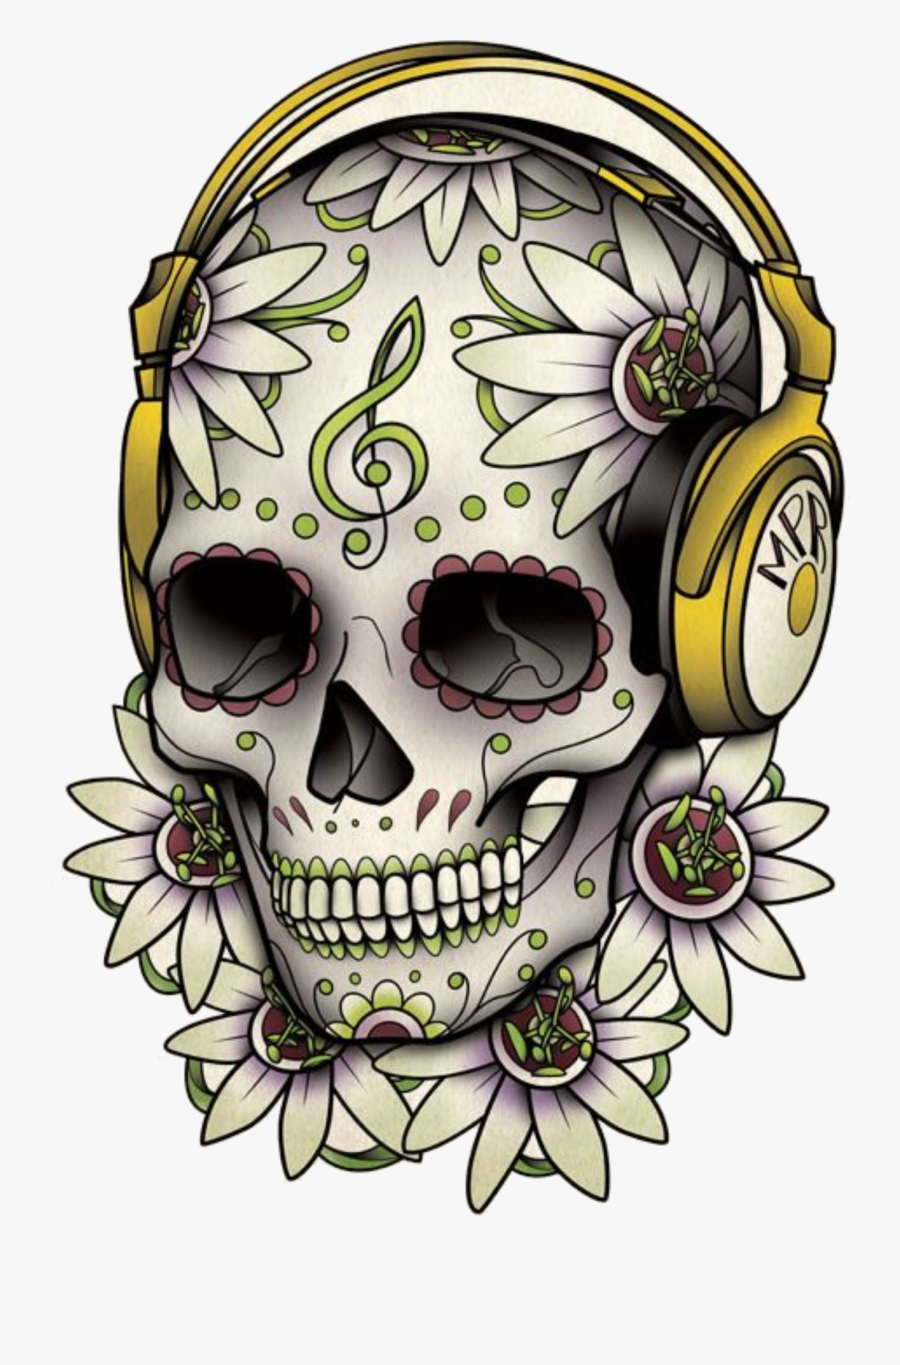 Tattoo Skull Calavera Dead Drawing Of The Clipart - Day Of The Dead Skull Music, Transparent Clipart